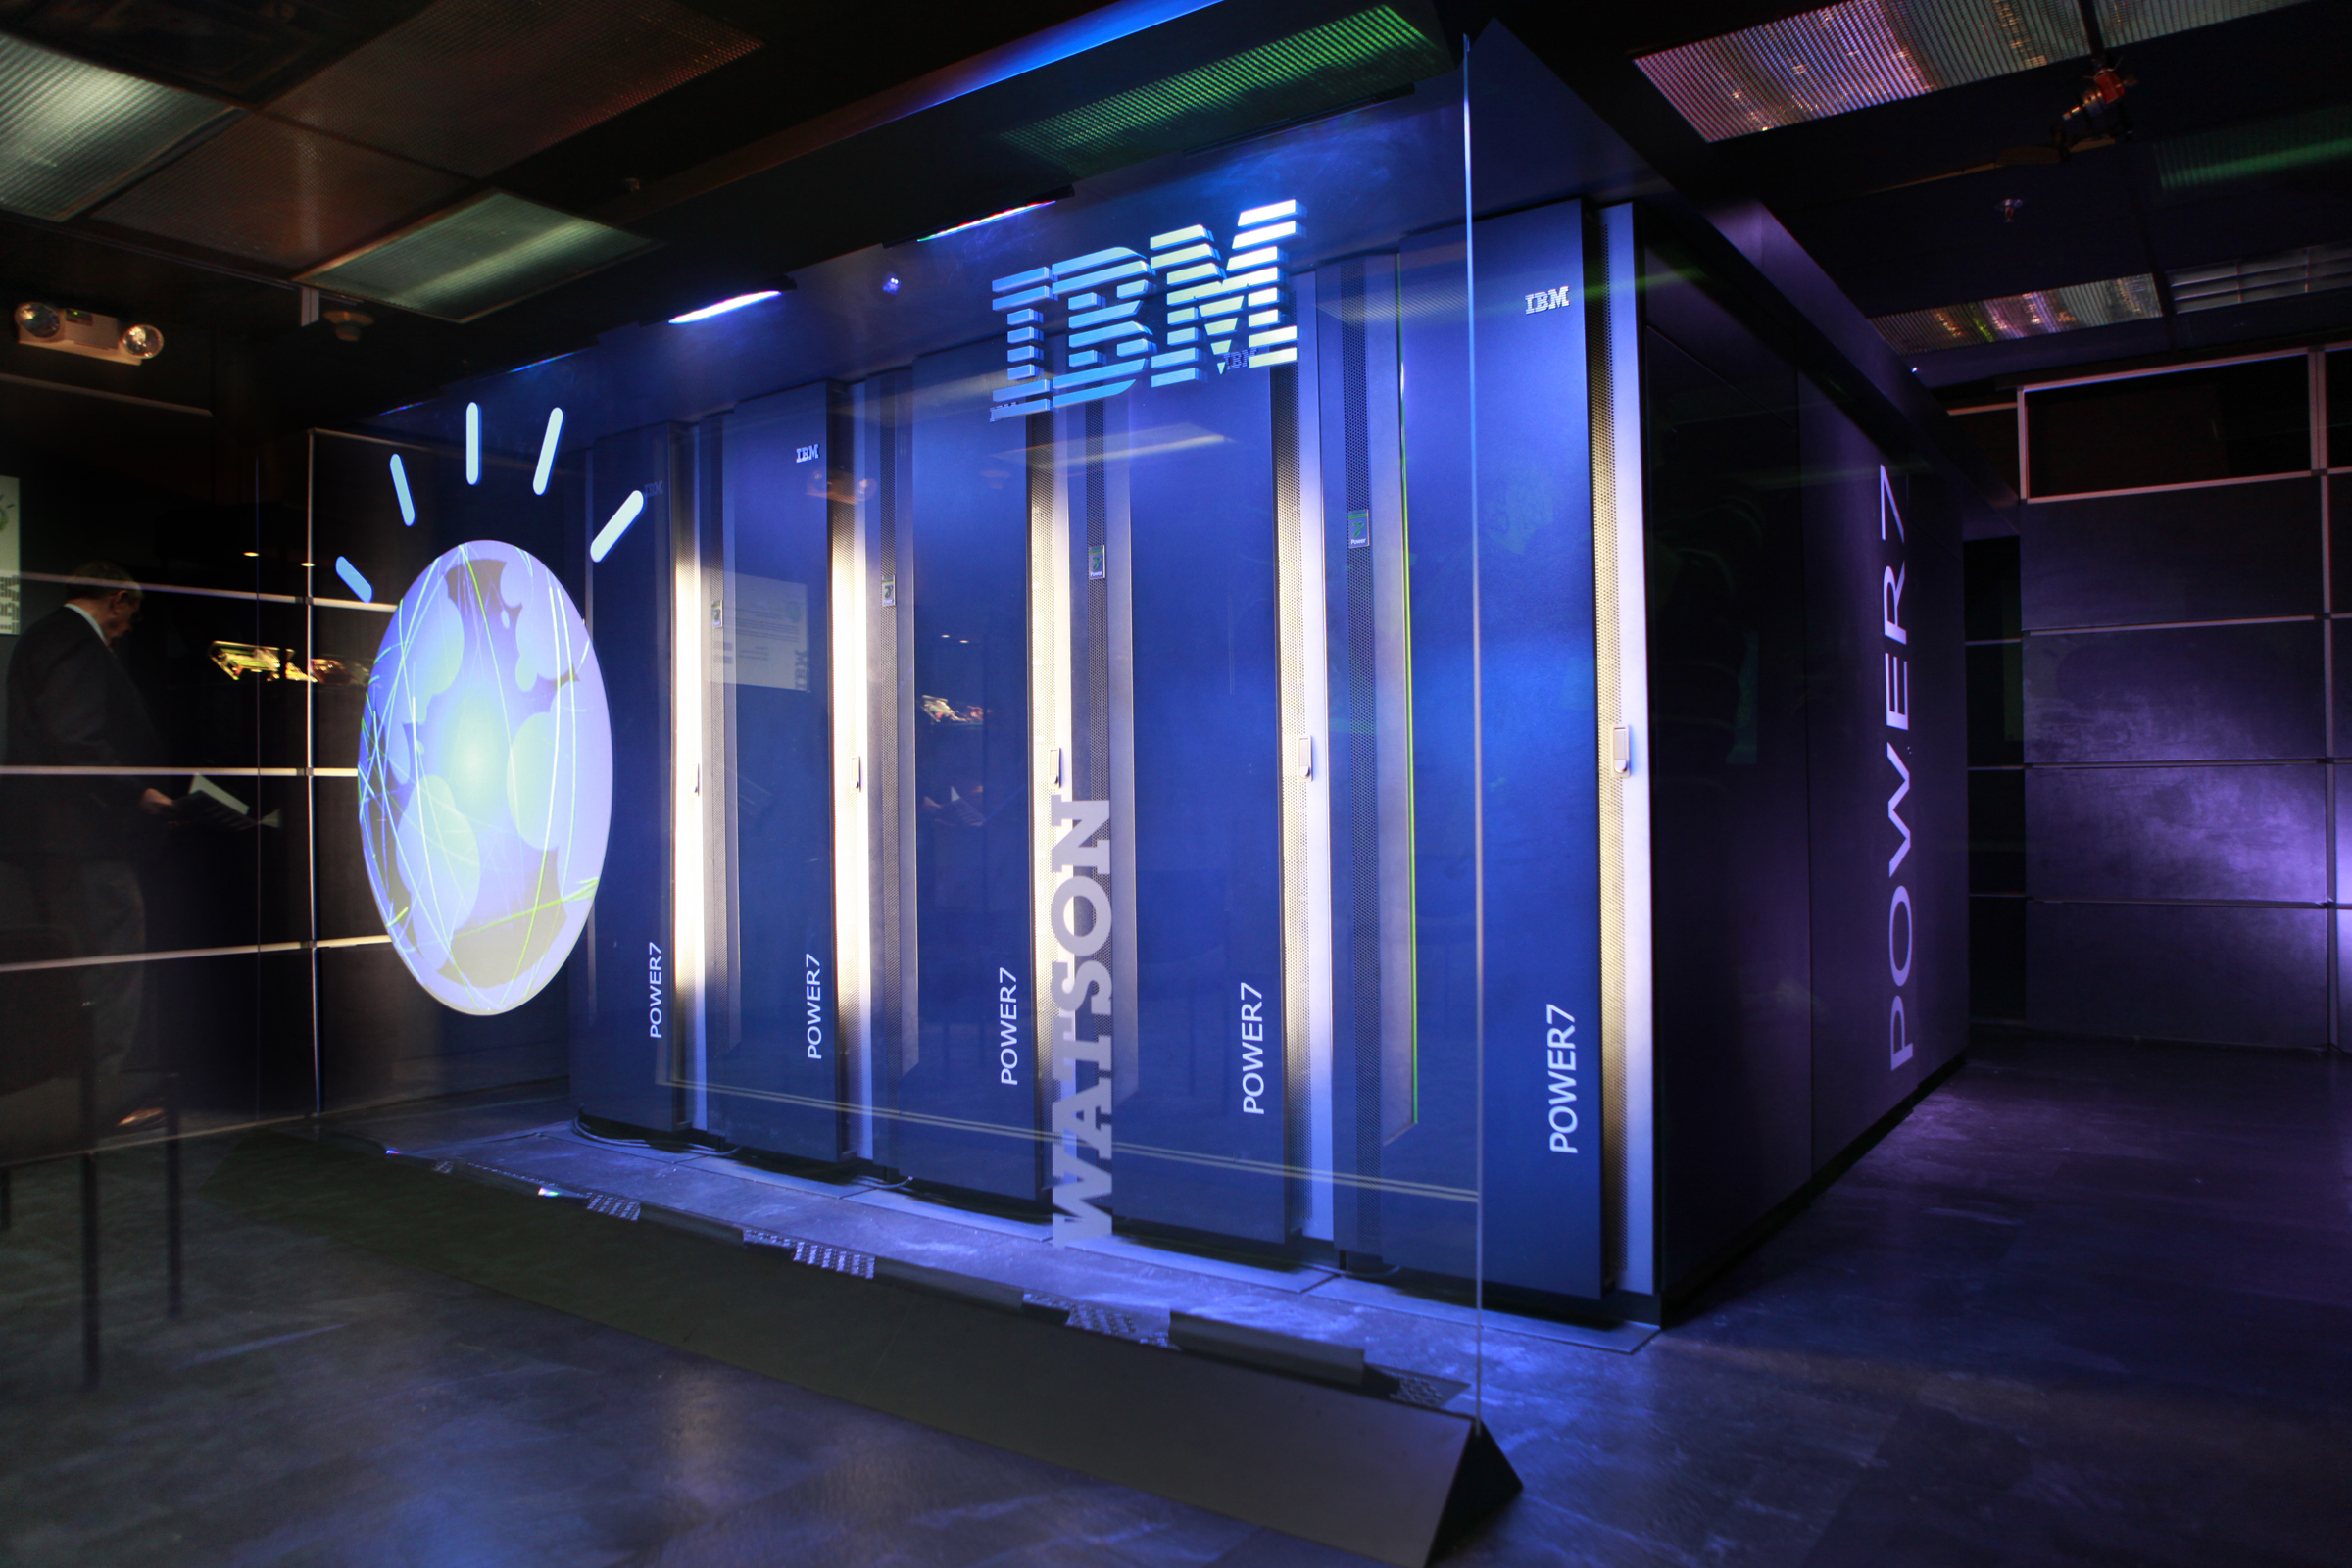 IBM's Watson computer before its 2011 Jeopardy! appearance.